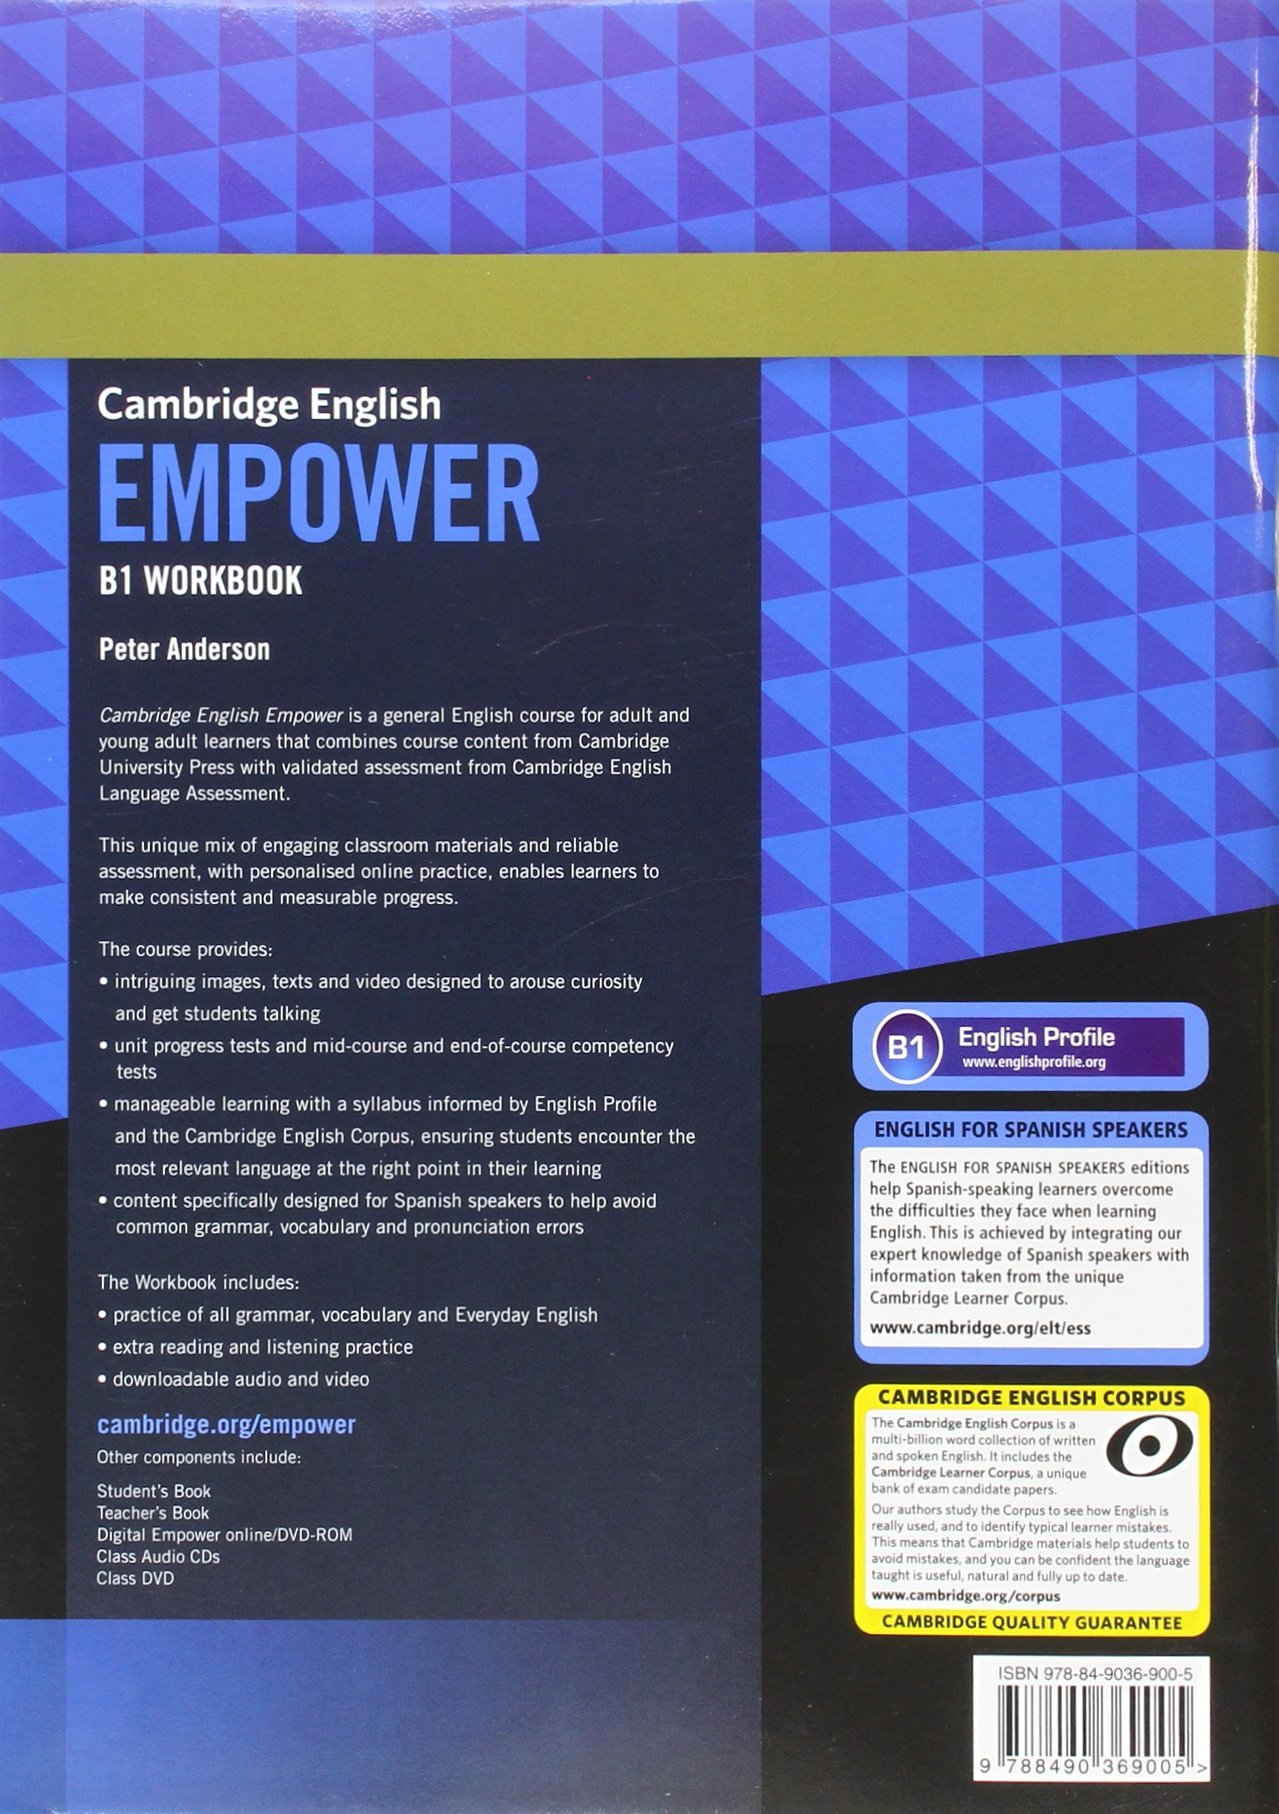 Cambridge English Empower for Spanish Speakers B1 Workbook with Answers, with Downloadable Audio and Video: Amazon.es: Anderson,Peter: Libros en idiomas extranjeros